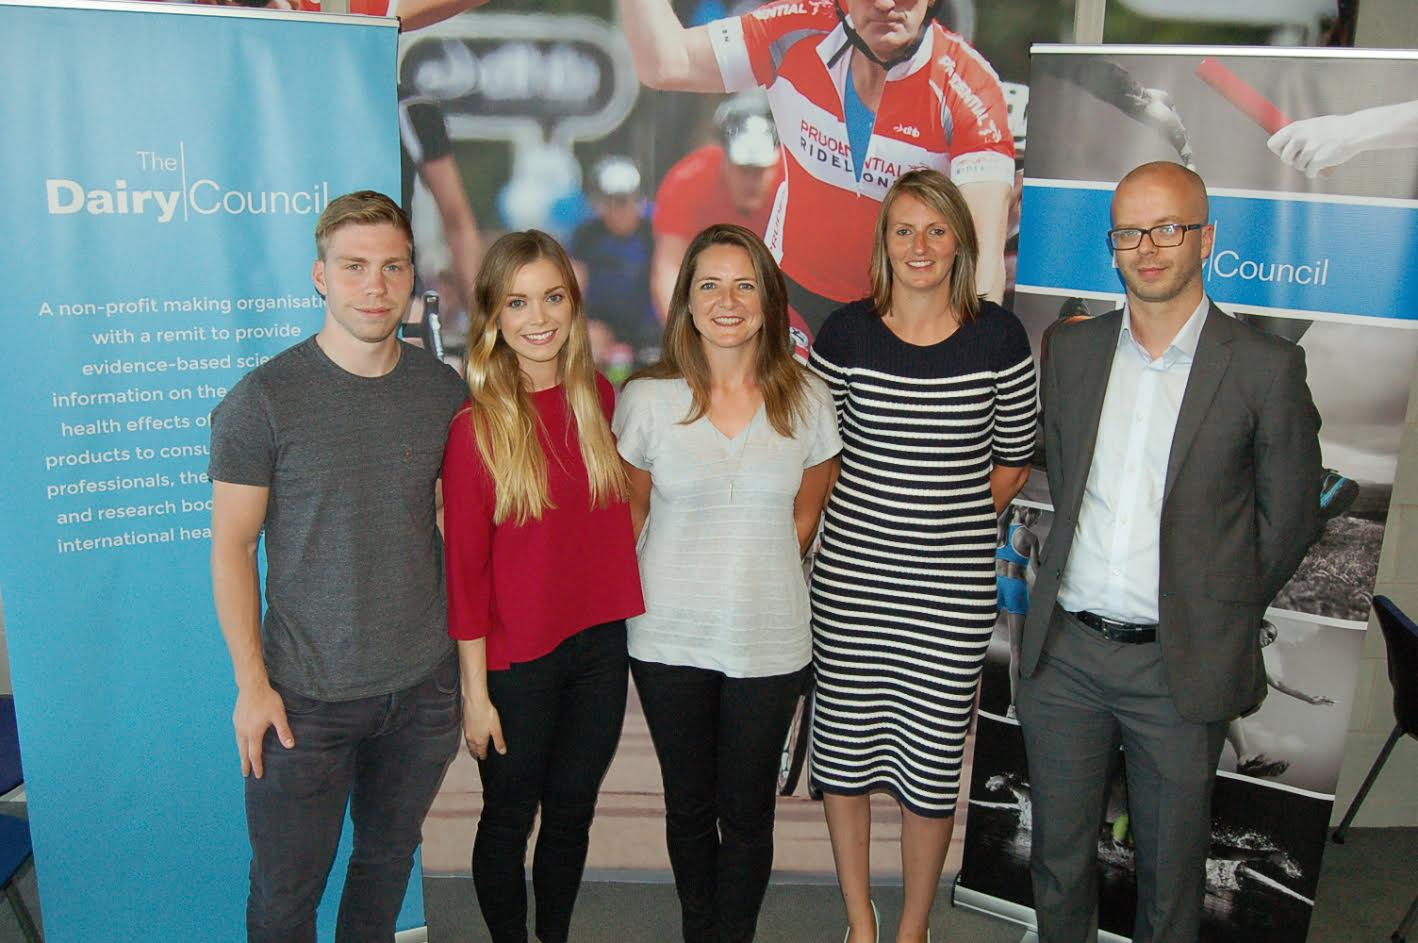 olympians attend nutrition event to showcase benefits of dairy philip hindes mbe lydia cooper nutrition scientist at the dairy council goldie